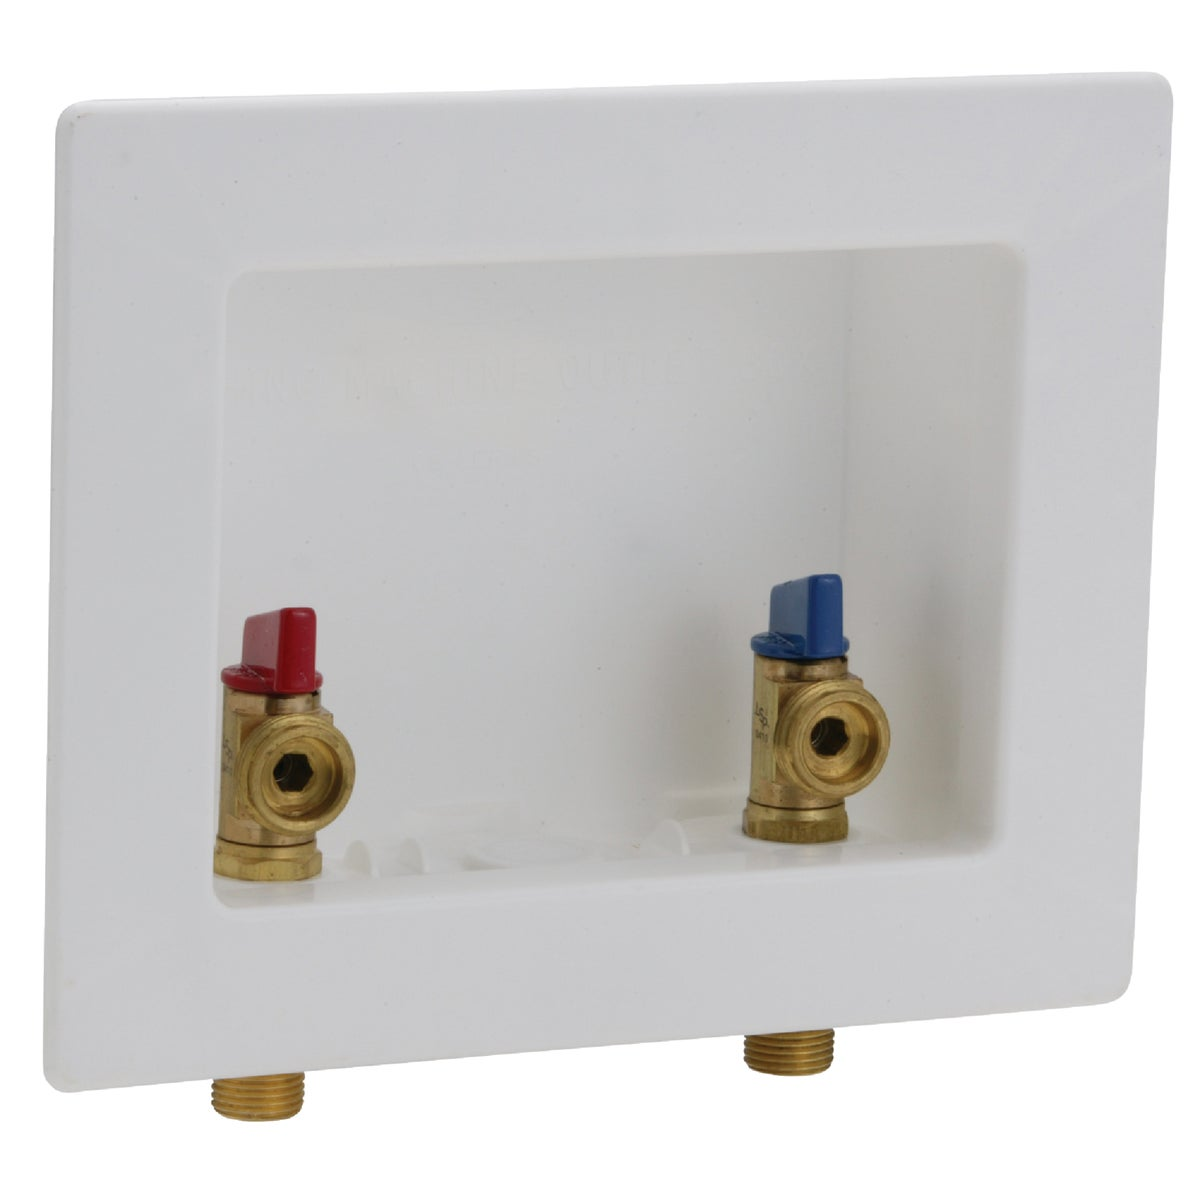 2-VALVE OUTLET BOX - OB-201 by Danco Perfect Match